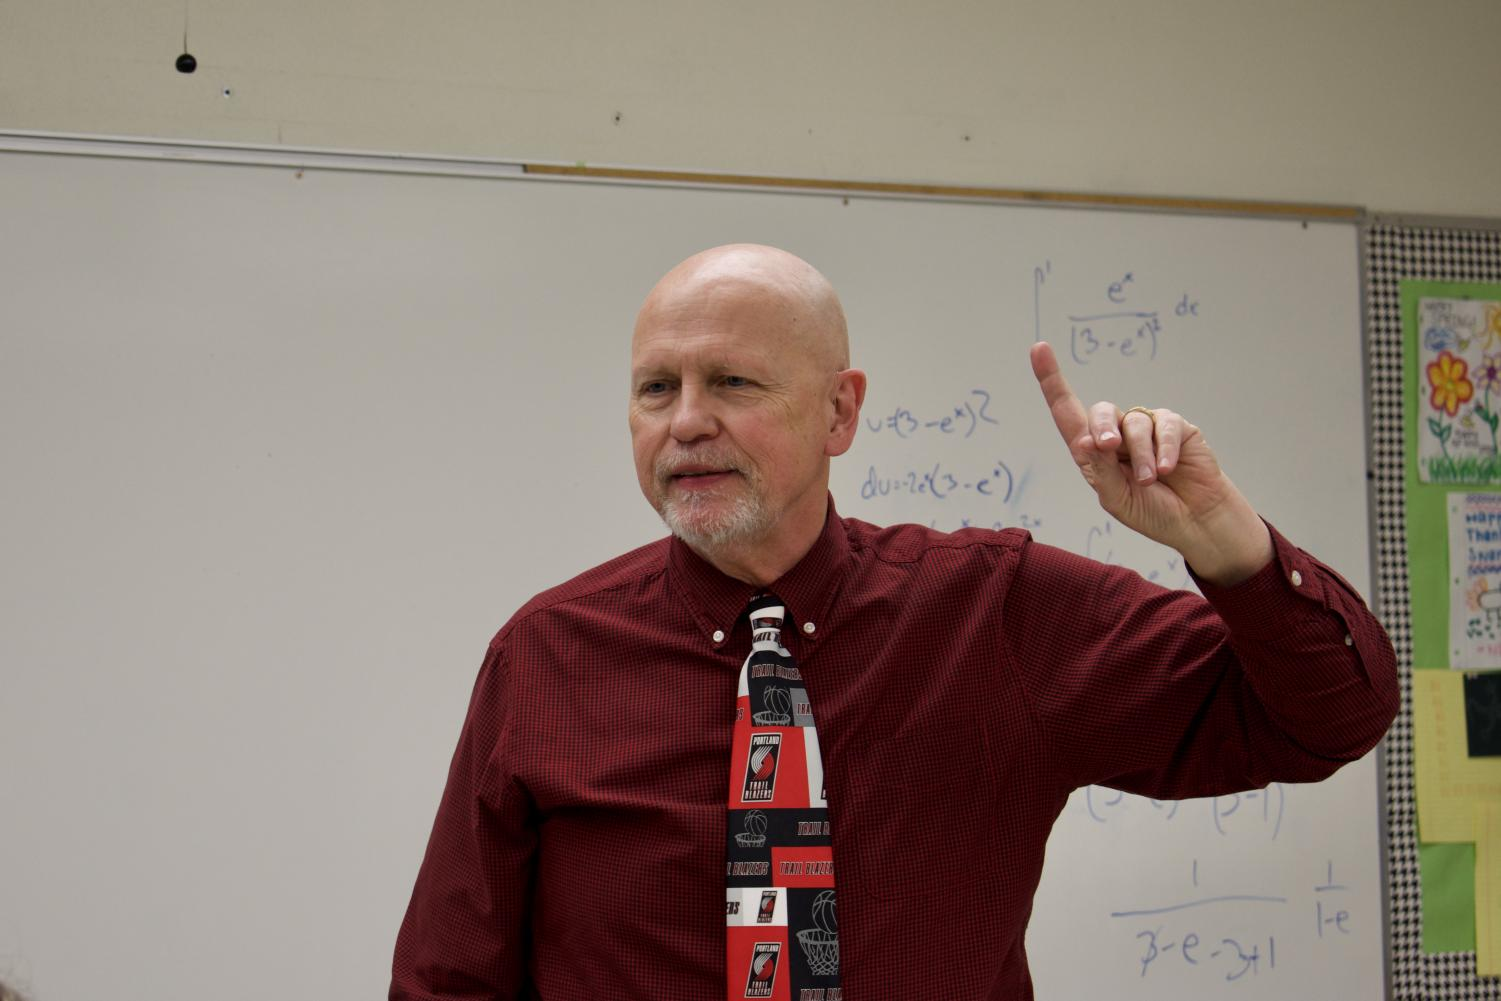 Mr.+Swanson+has+taught+34+years+in+public+school+in+addition+to+six+years+at+La+Salle.+